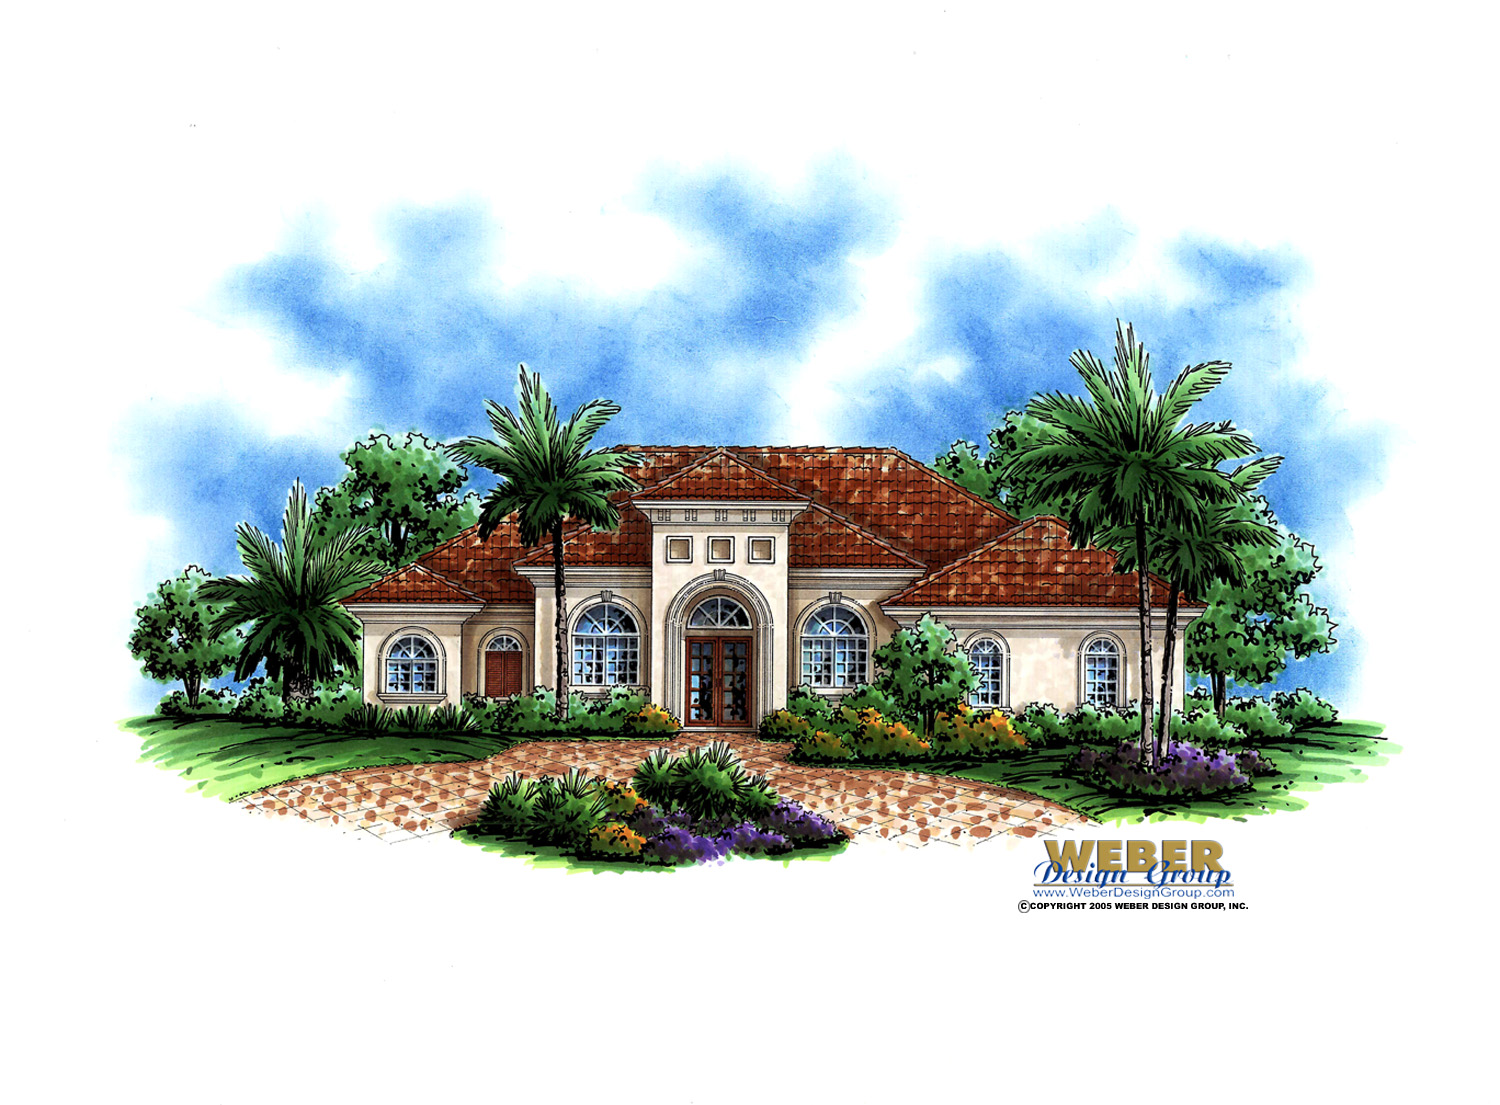 Santa Barbara Home Plan - Weber Design Group; Naples, FL. on country farm style home plans, 4br home plans, craftsman house, split plan home plans, french normandy style home plans, historic california craftsman home plans, georgian style home plans, pioneer style home plans, prairie style home plans, craftsmen style home plans, foyer home plans, turn of the century home plans, greene and greene style home plans, red brick home plans, ranch plans, english country style home plans, arts & crafts style home plans, empty nesters home plans, craftsman floor plans, barn style home plans,